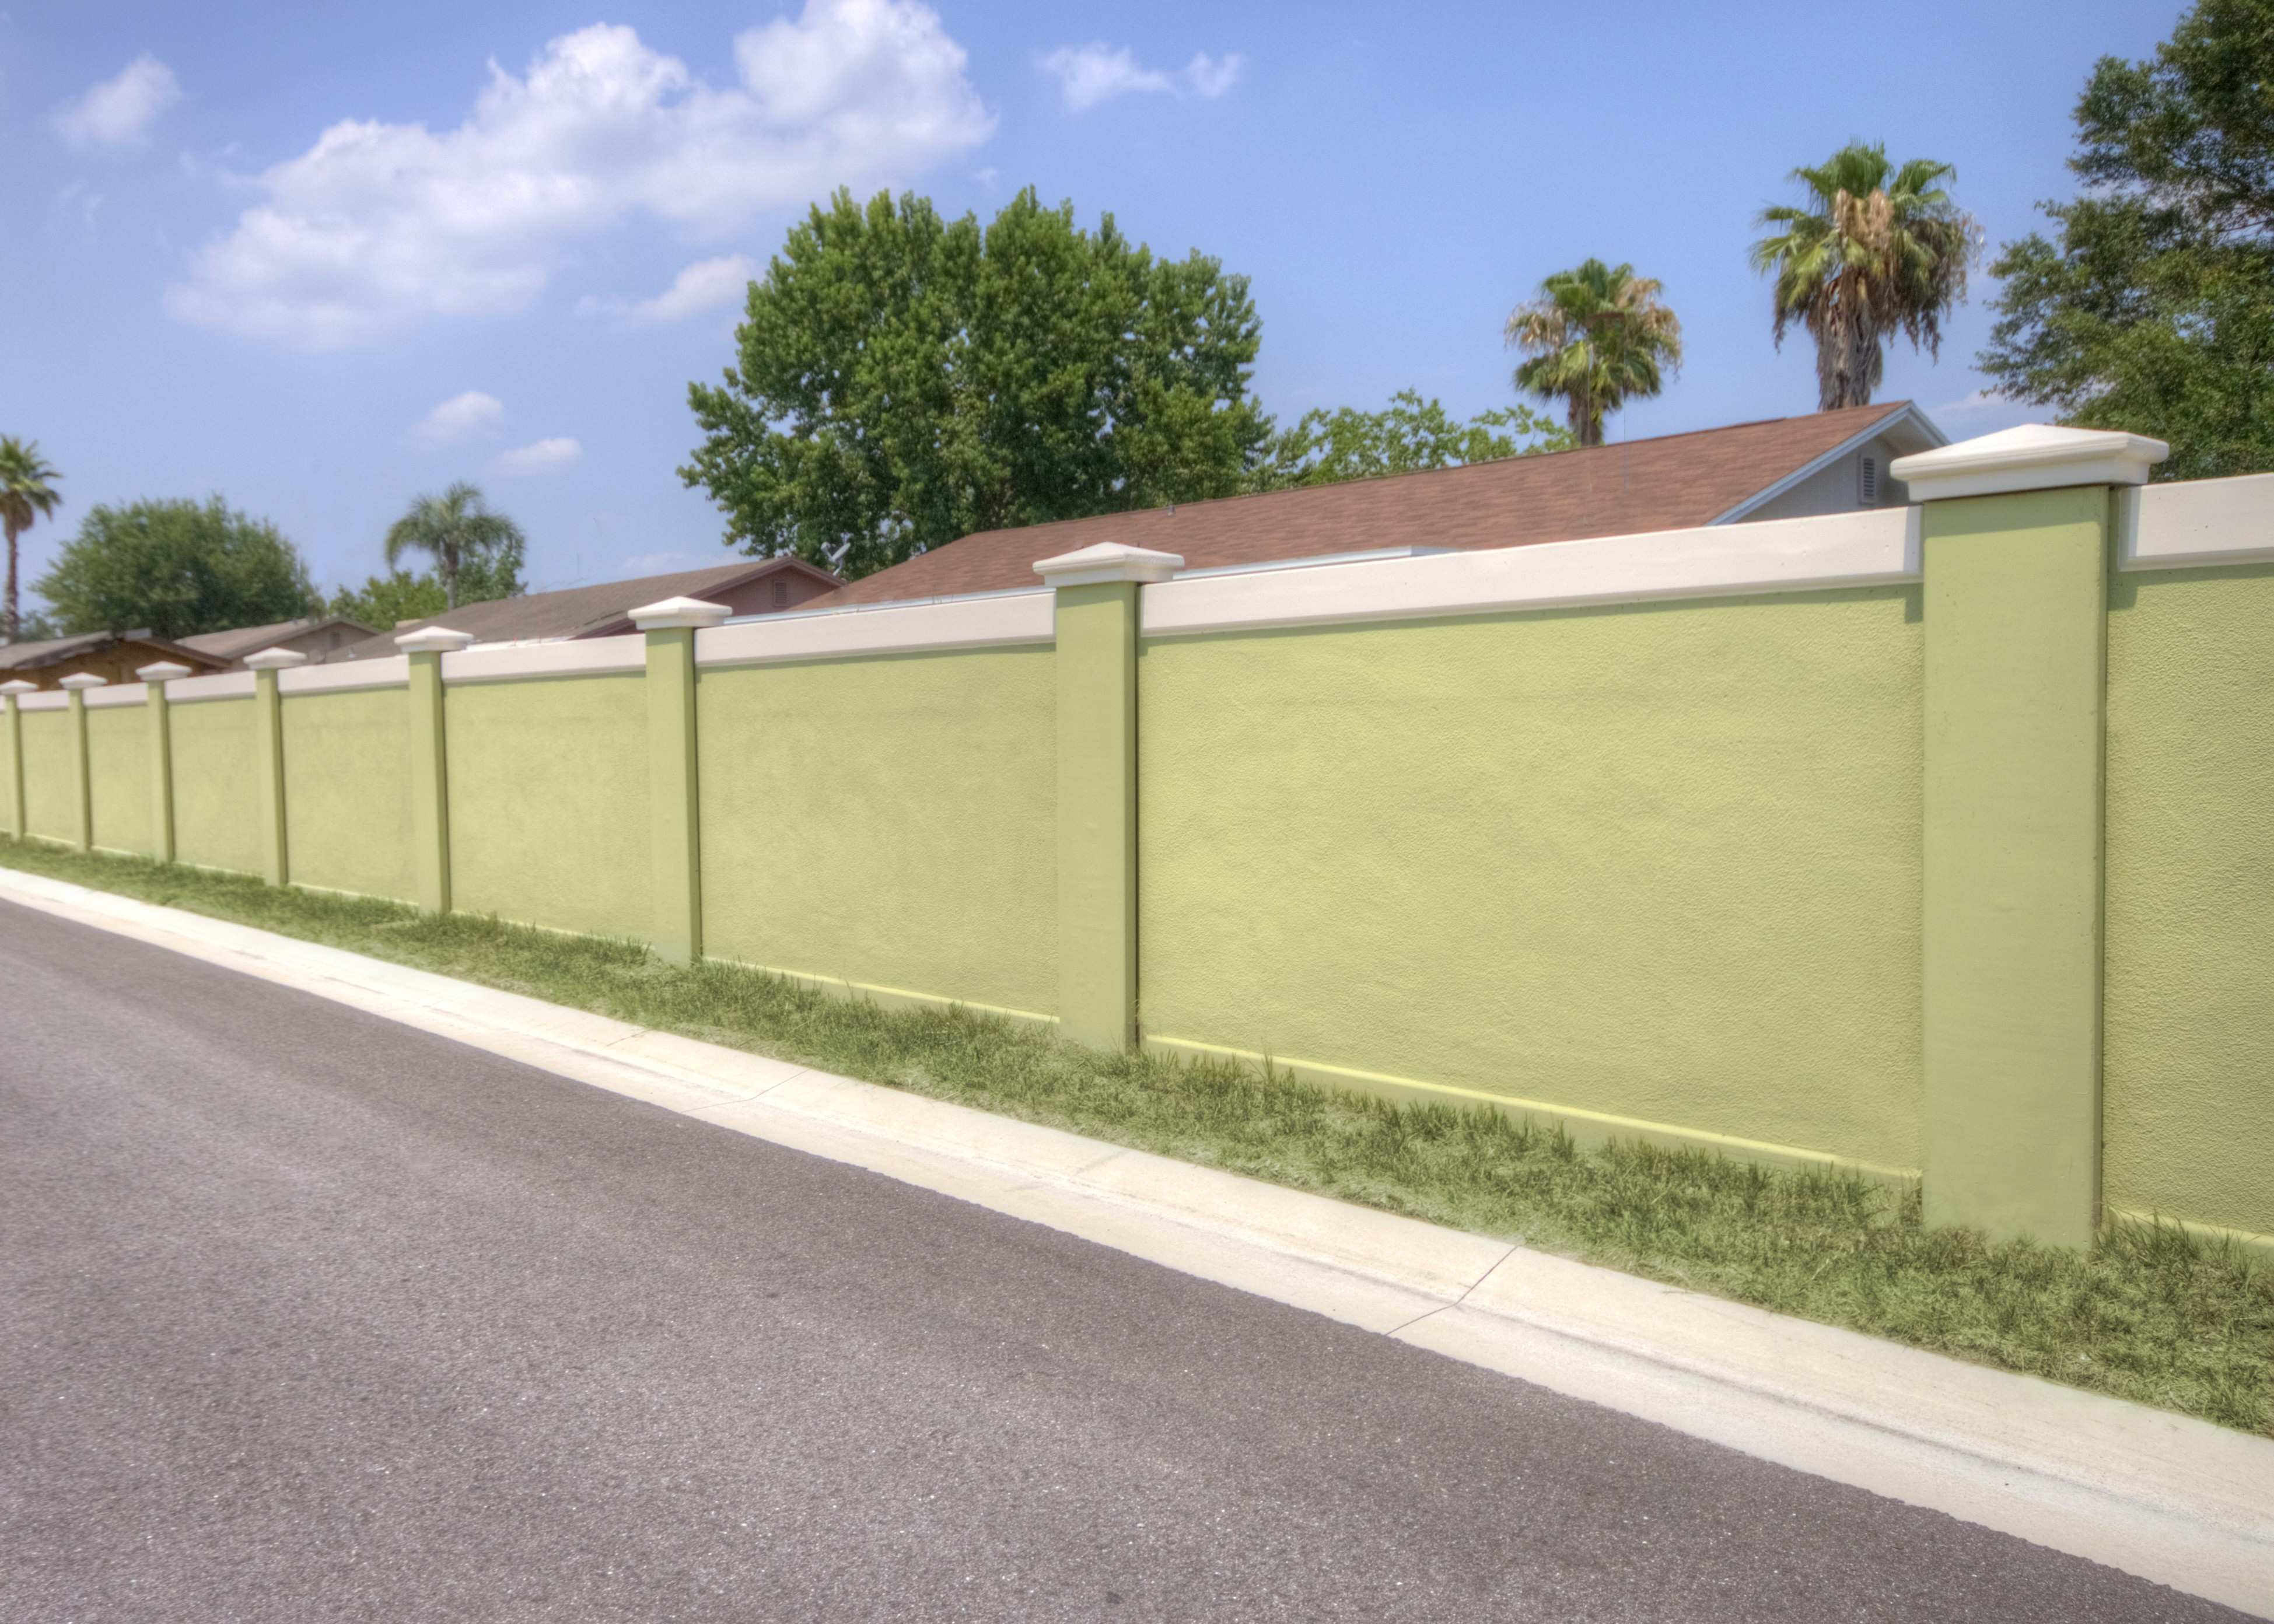 Wall Fence Design Pictures Lovely Appealing Wall Fence Designs for ...